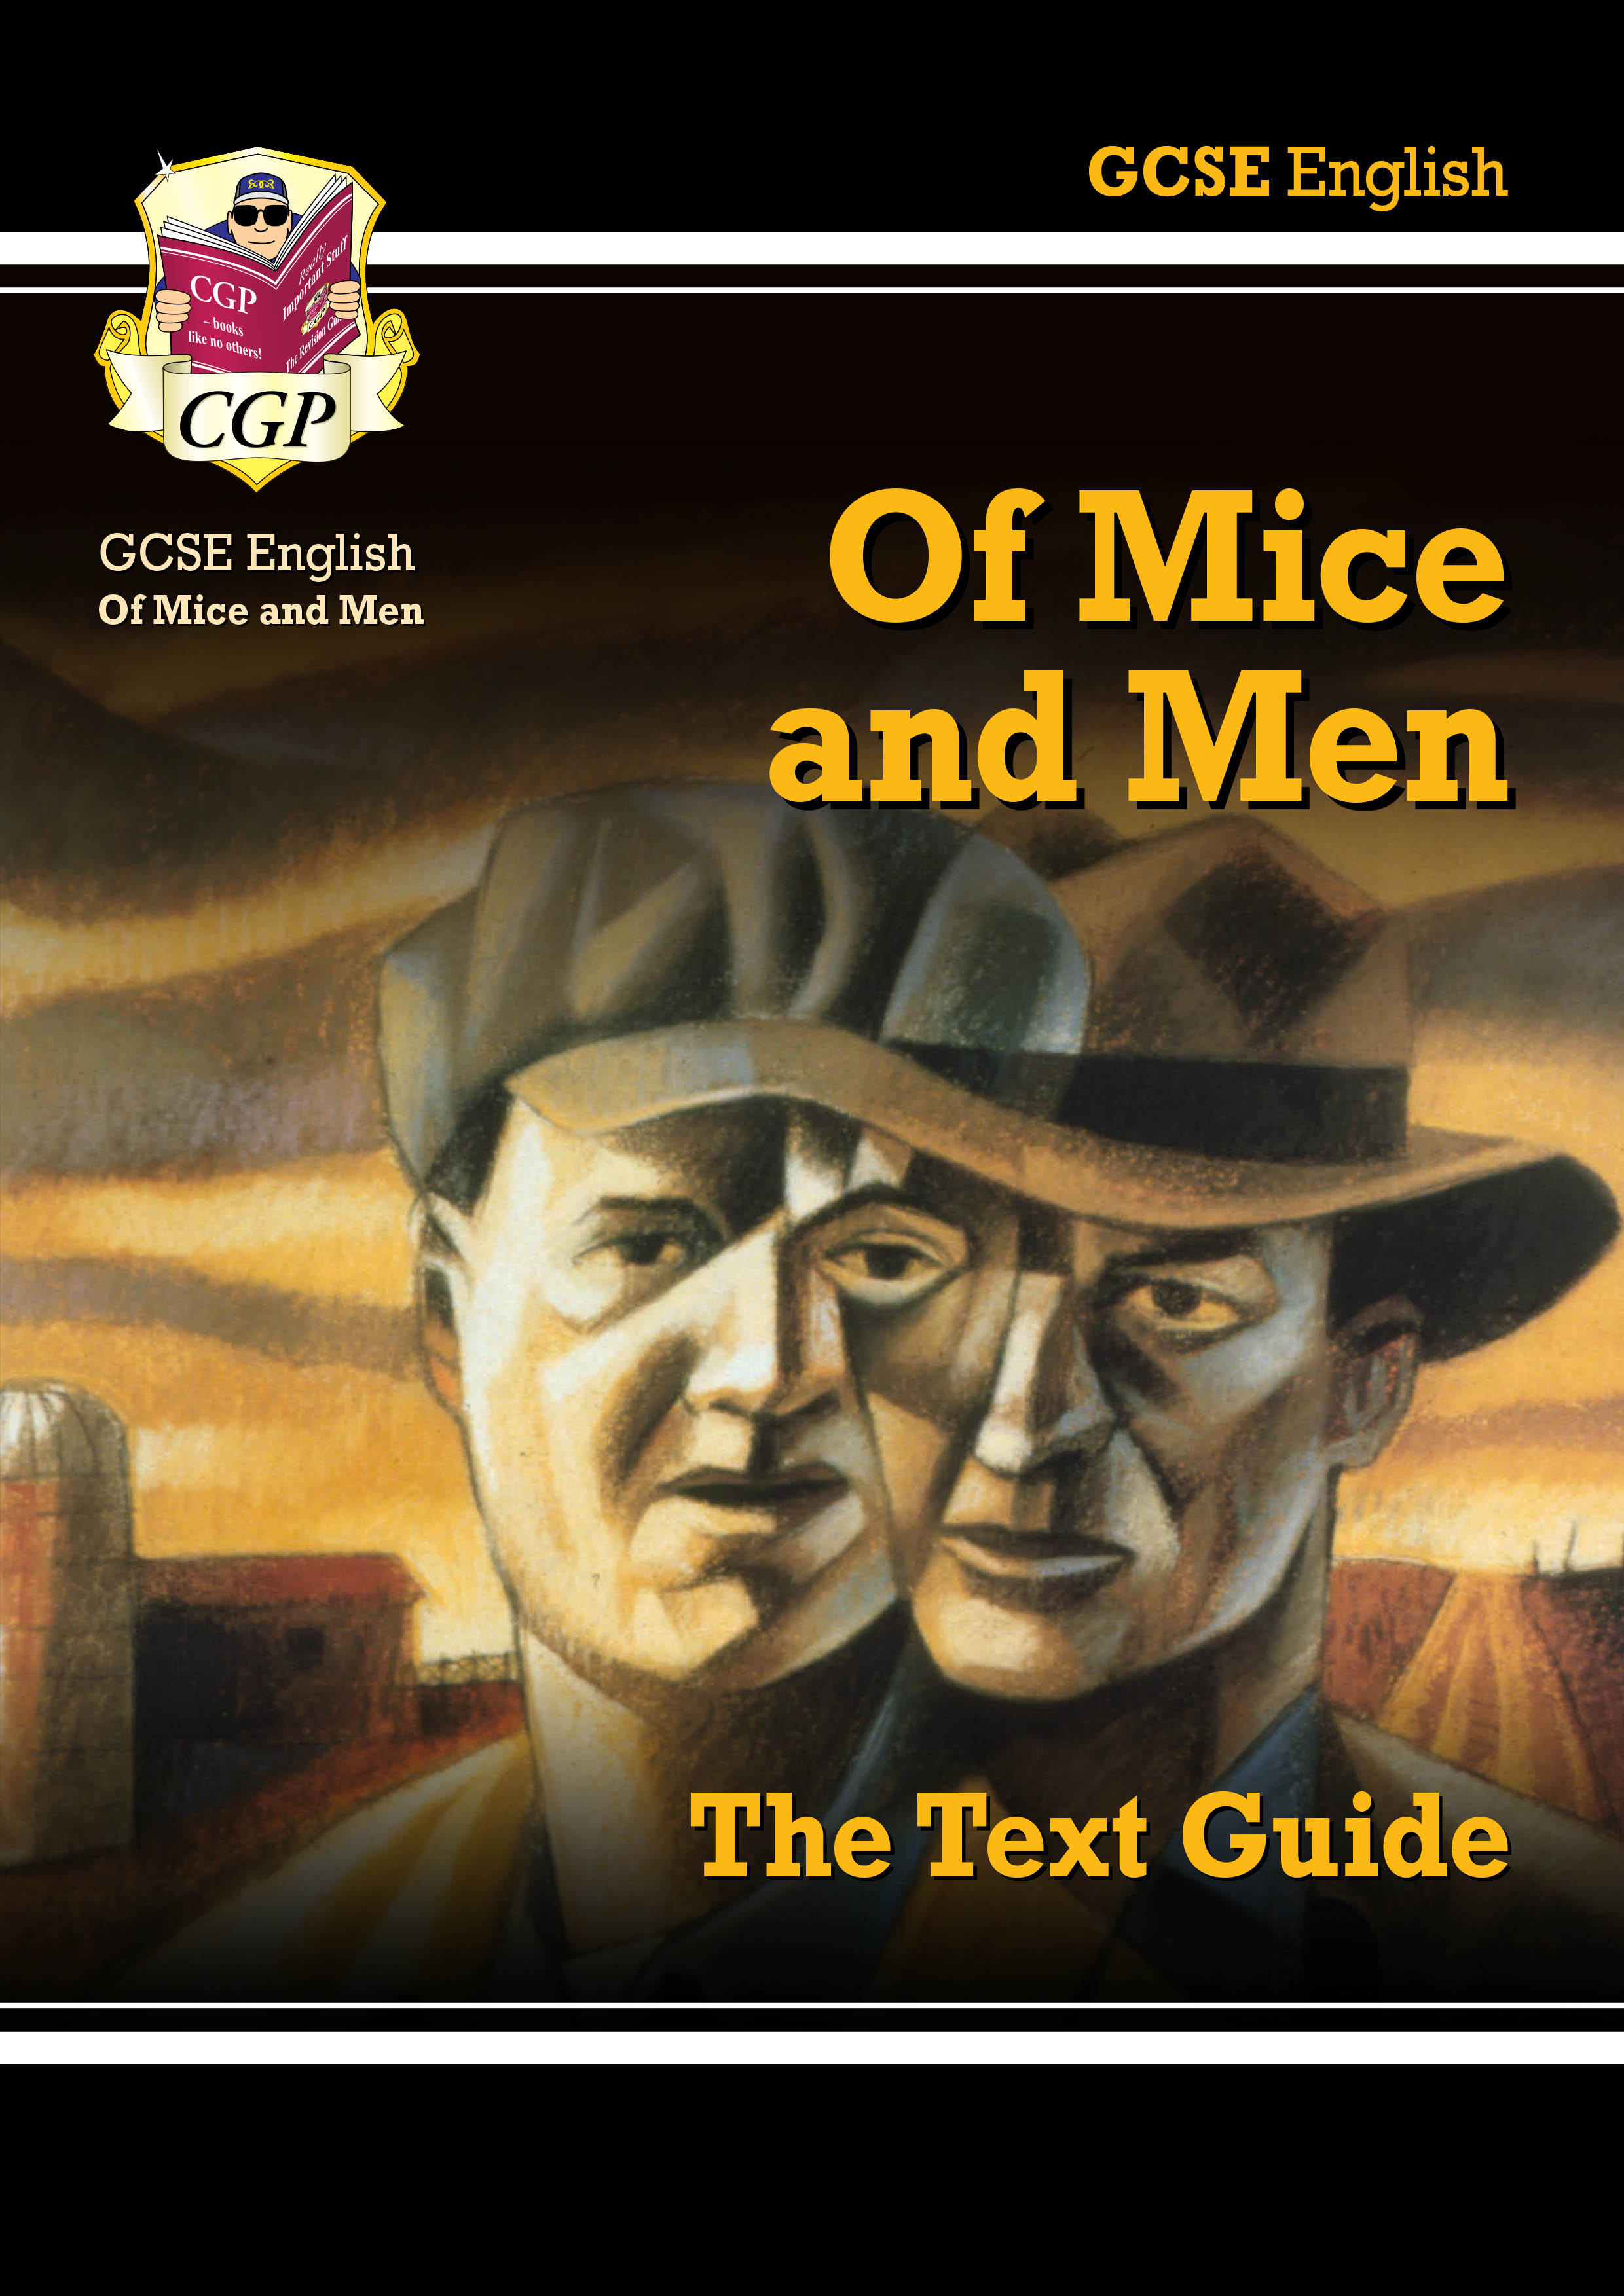 ETO44DK - GCSE English Text Guide - Of Mice & Men